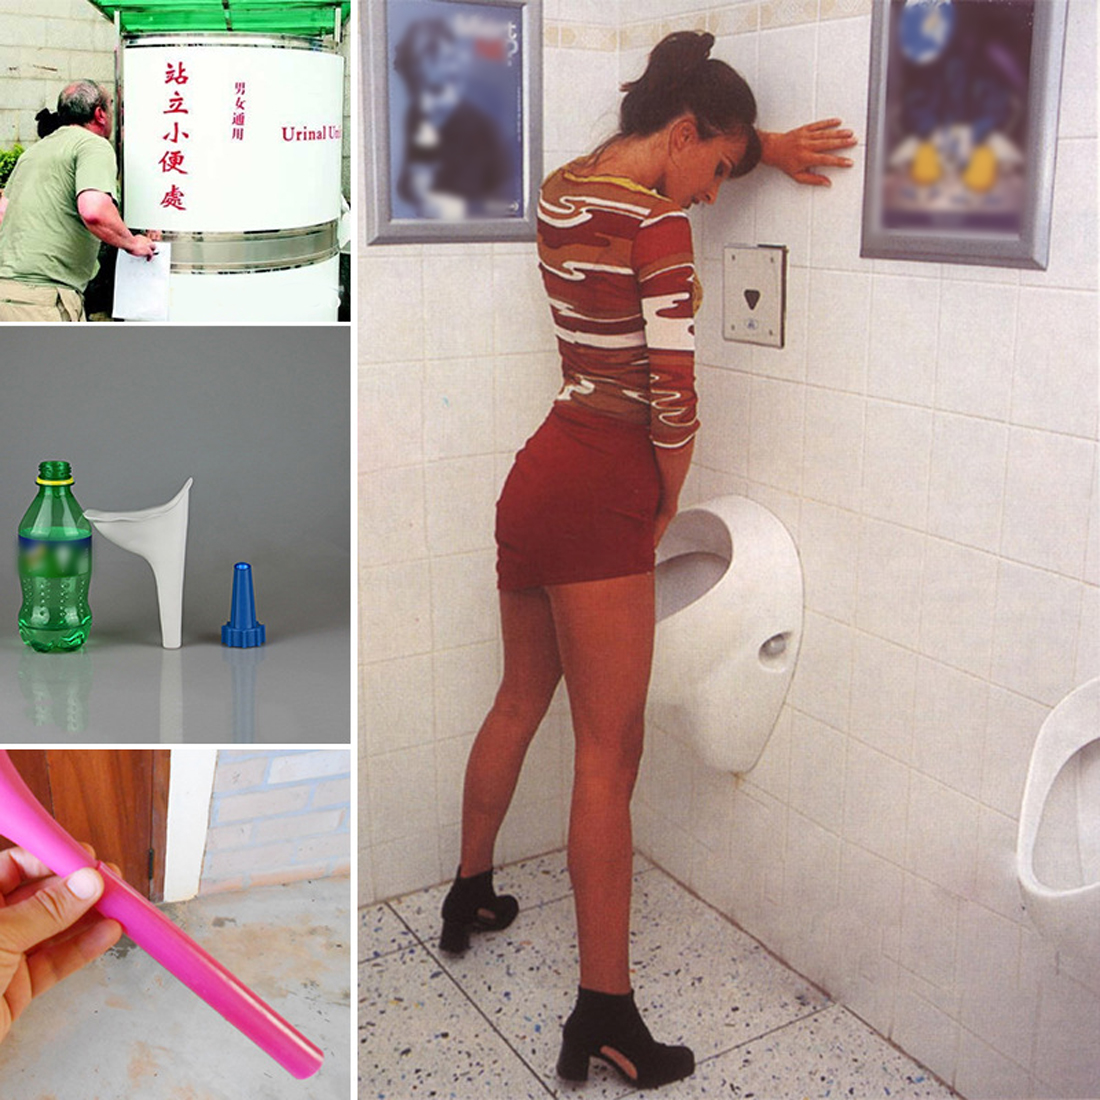 Outdoor Camping Soft Silicone Urination Device Stand Up & Pee Female Urinal <font><b>Toilet</b></font> Design Women Urinal Travel